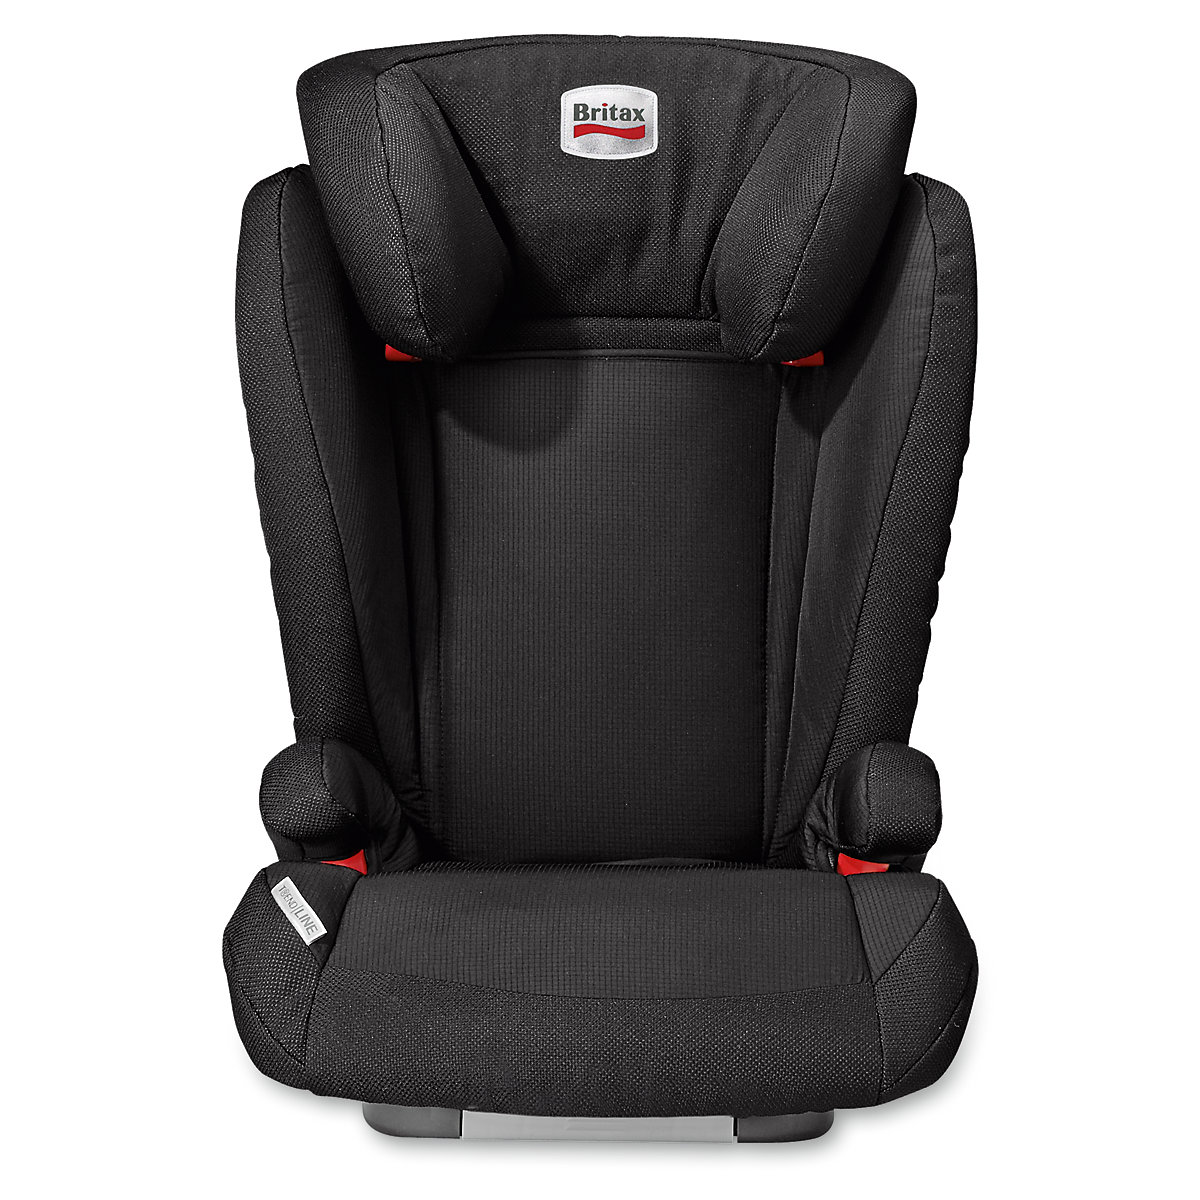 britax kidfix child car seat compare prices at foundem. Black Bedroom Furniture Sets. Home Design Ideas